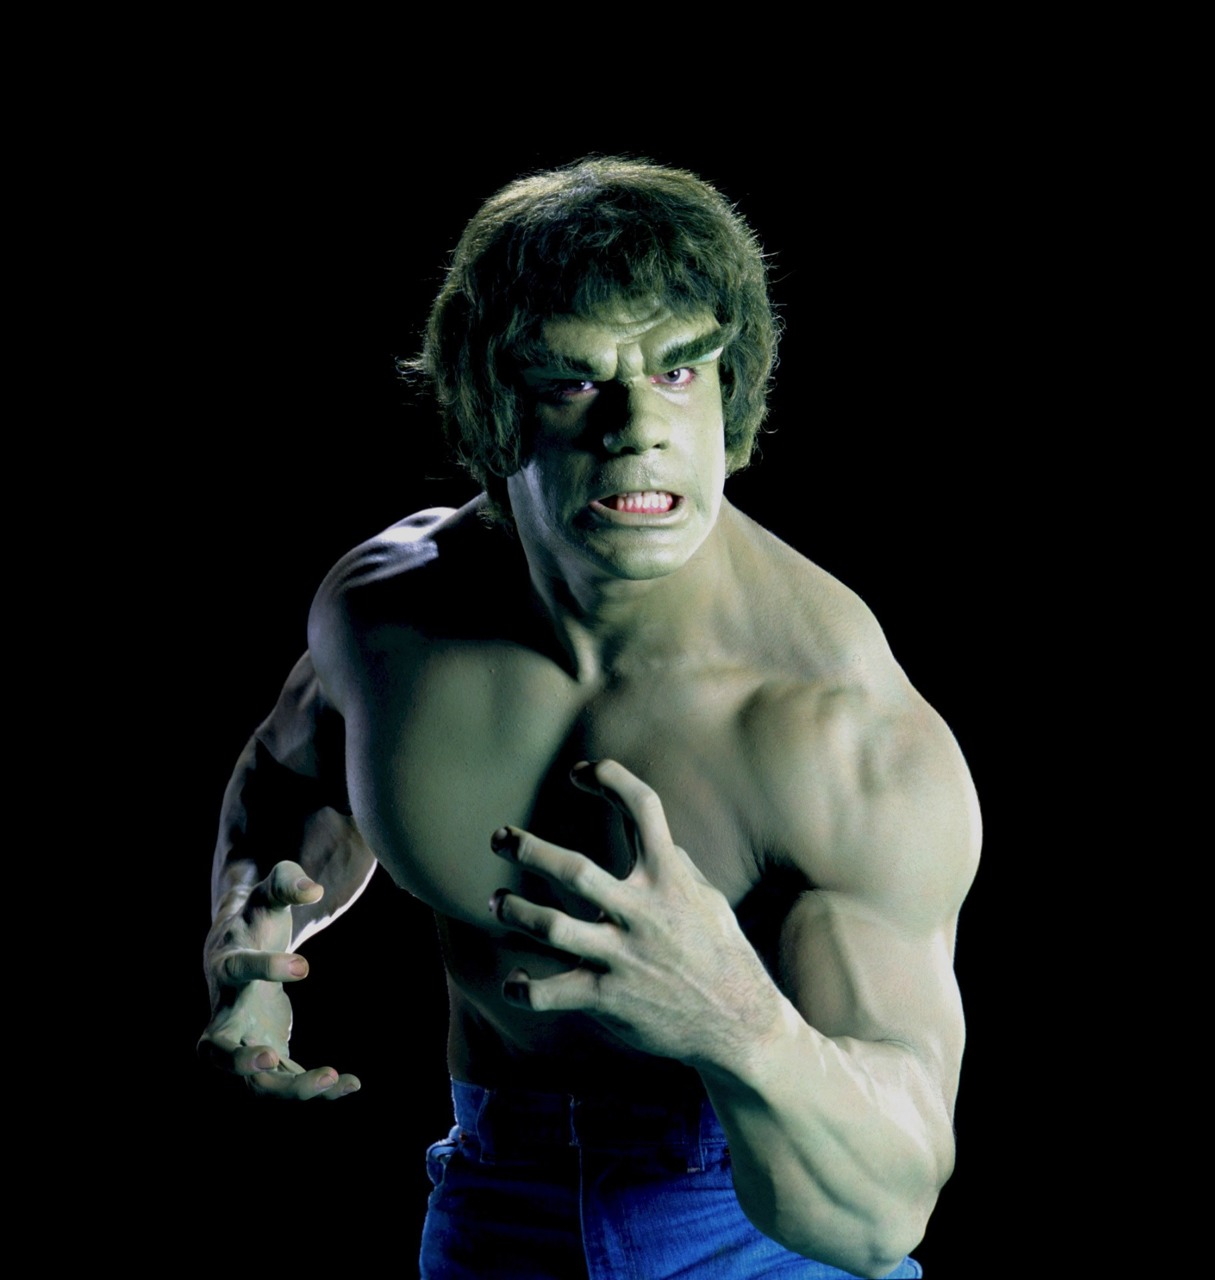 The Incredible Hulk images The Incredible Hulk HD wallpaper and background photos